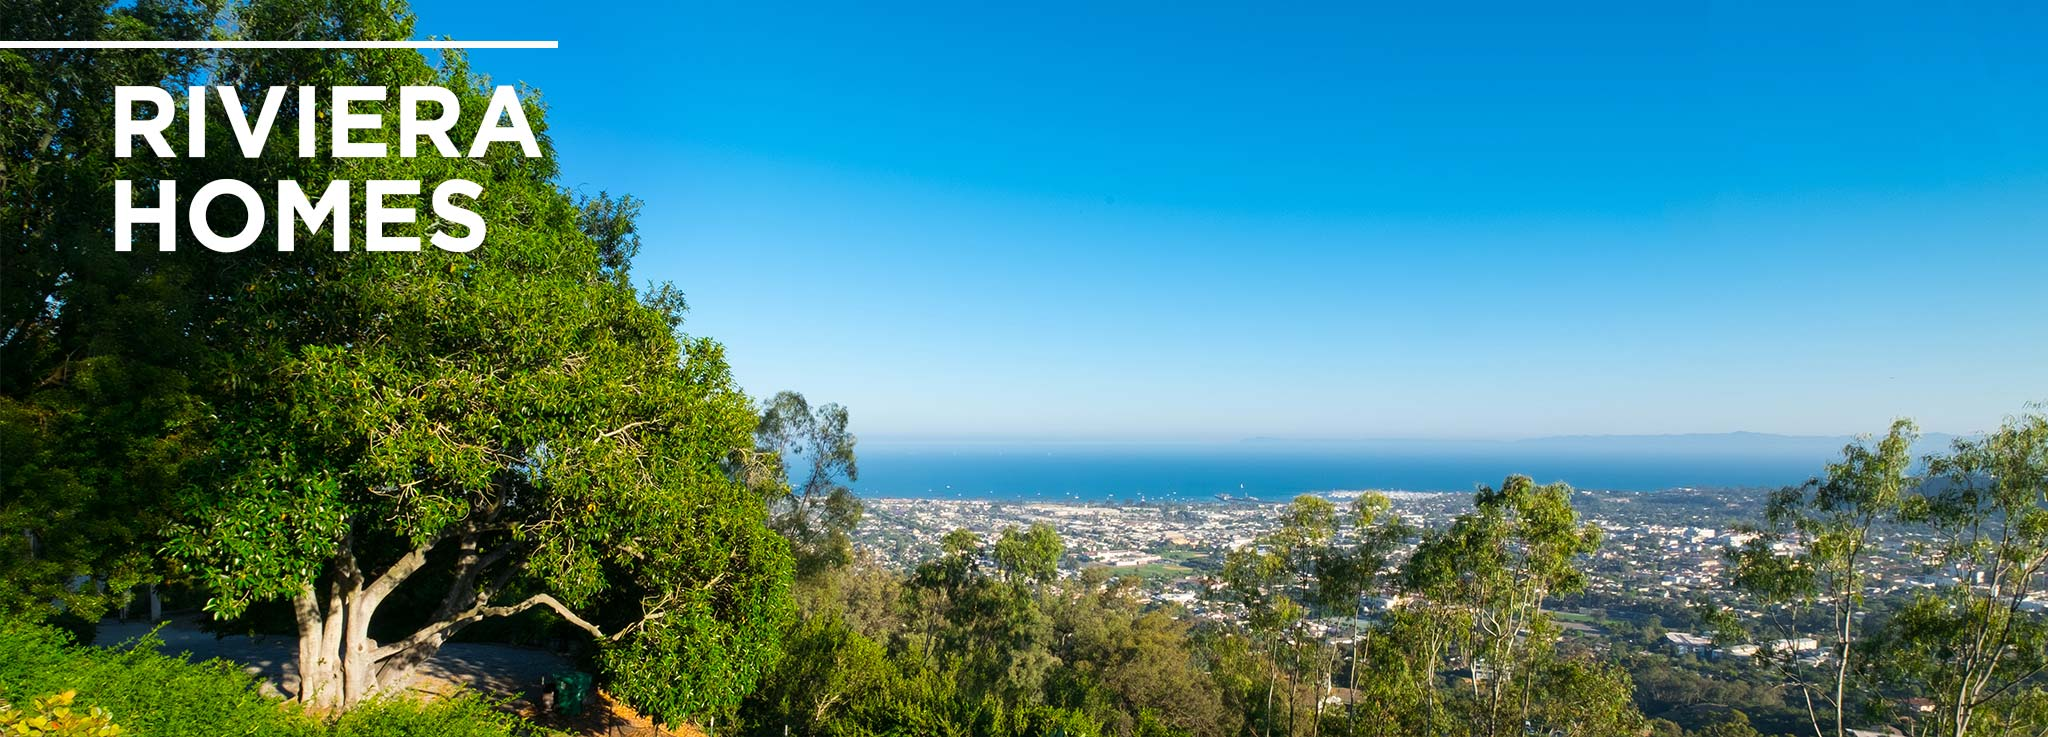 Homes for sale on the Riviera